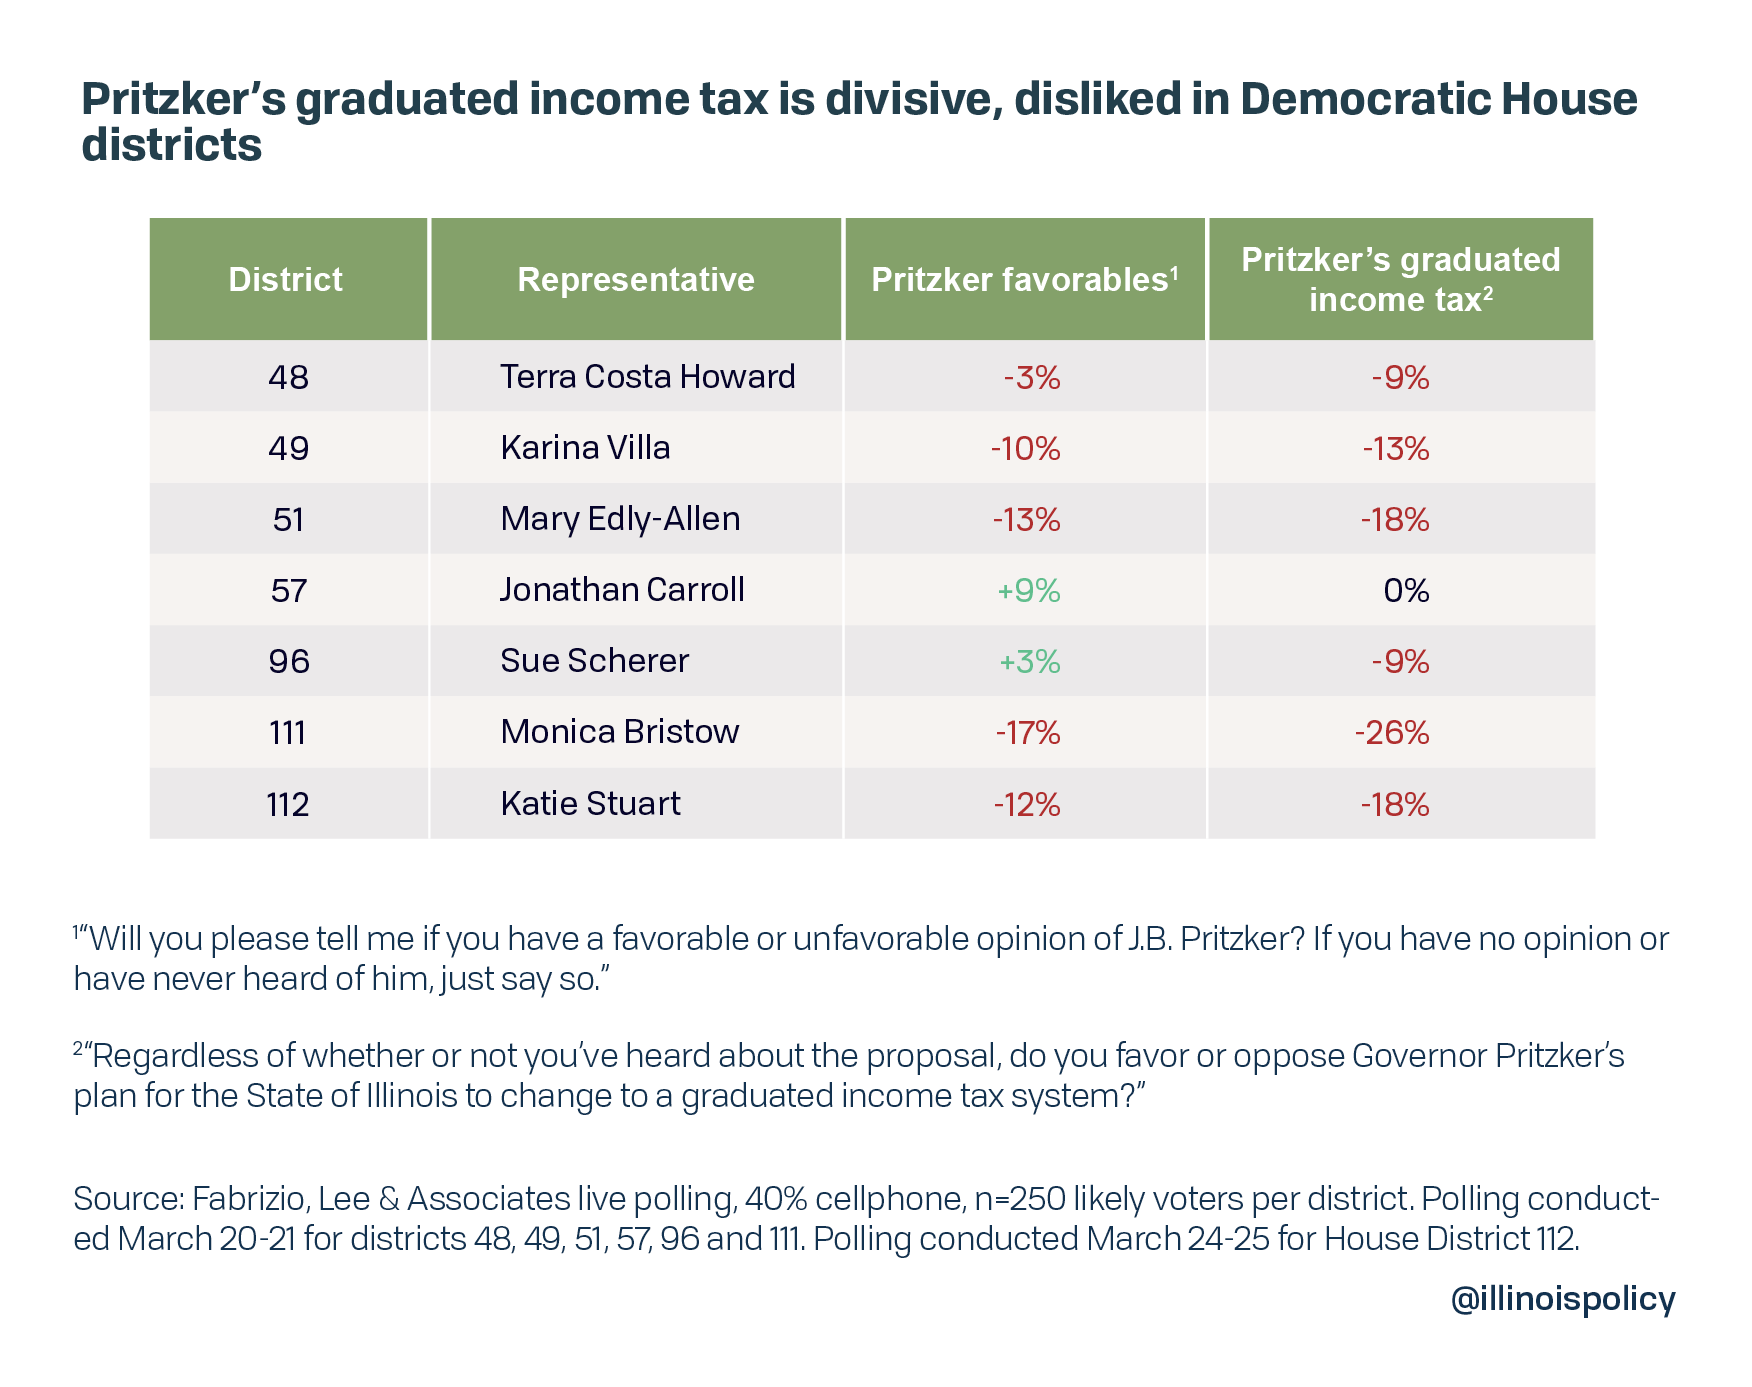 Pritzker's graduated income tax is divisive, disliked in Democrat House districts